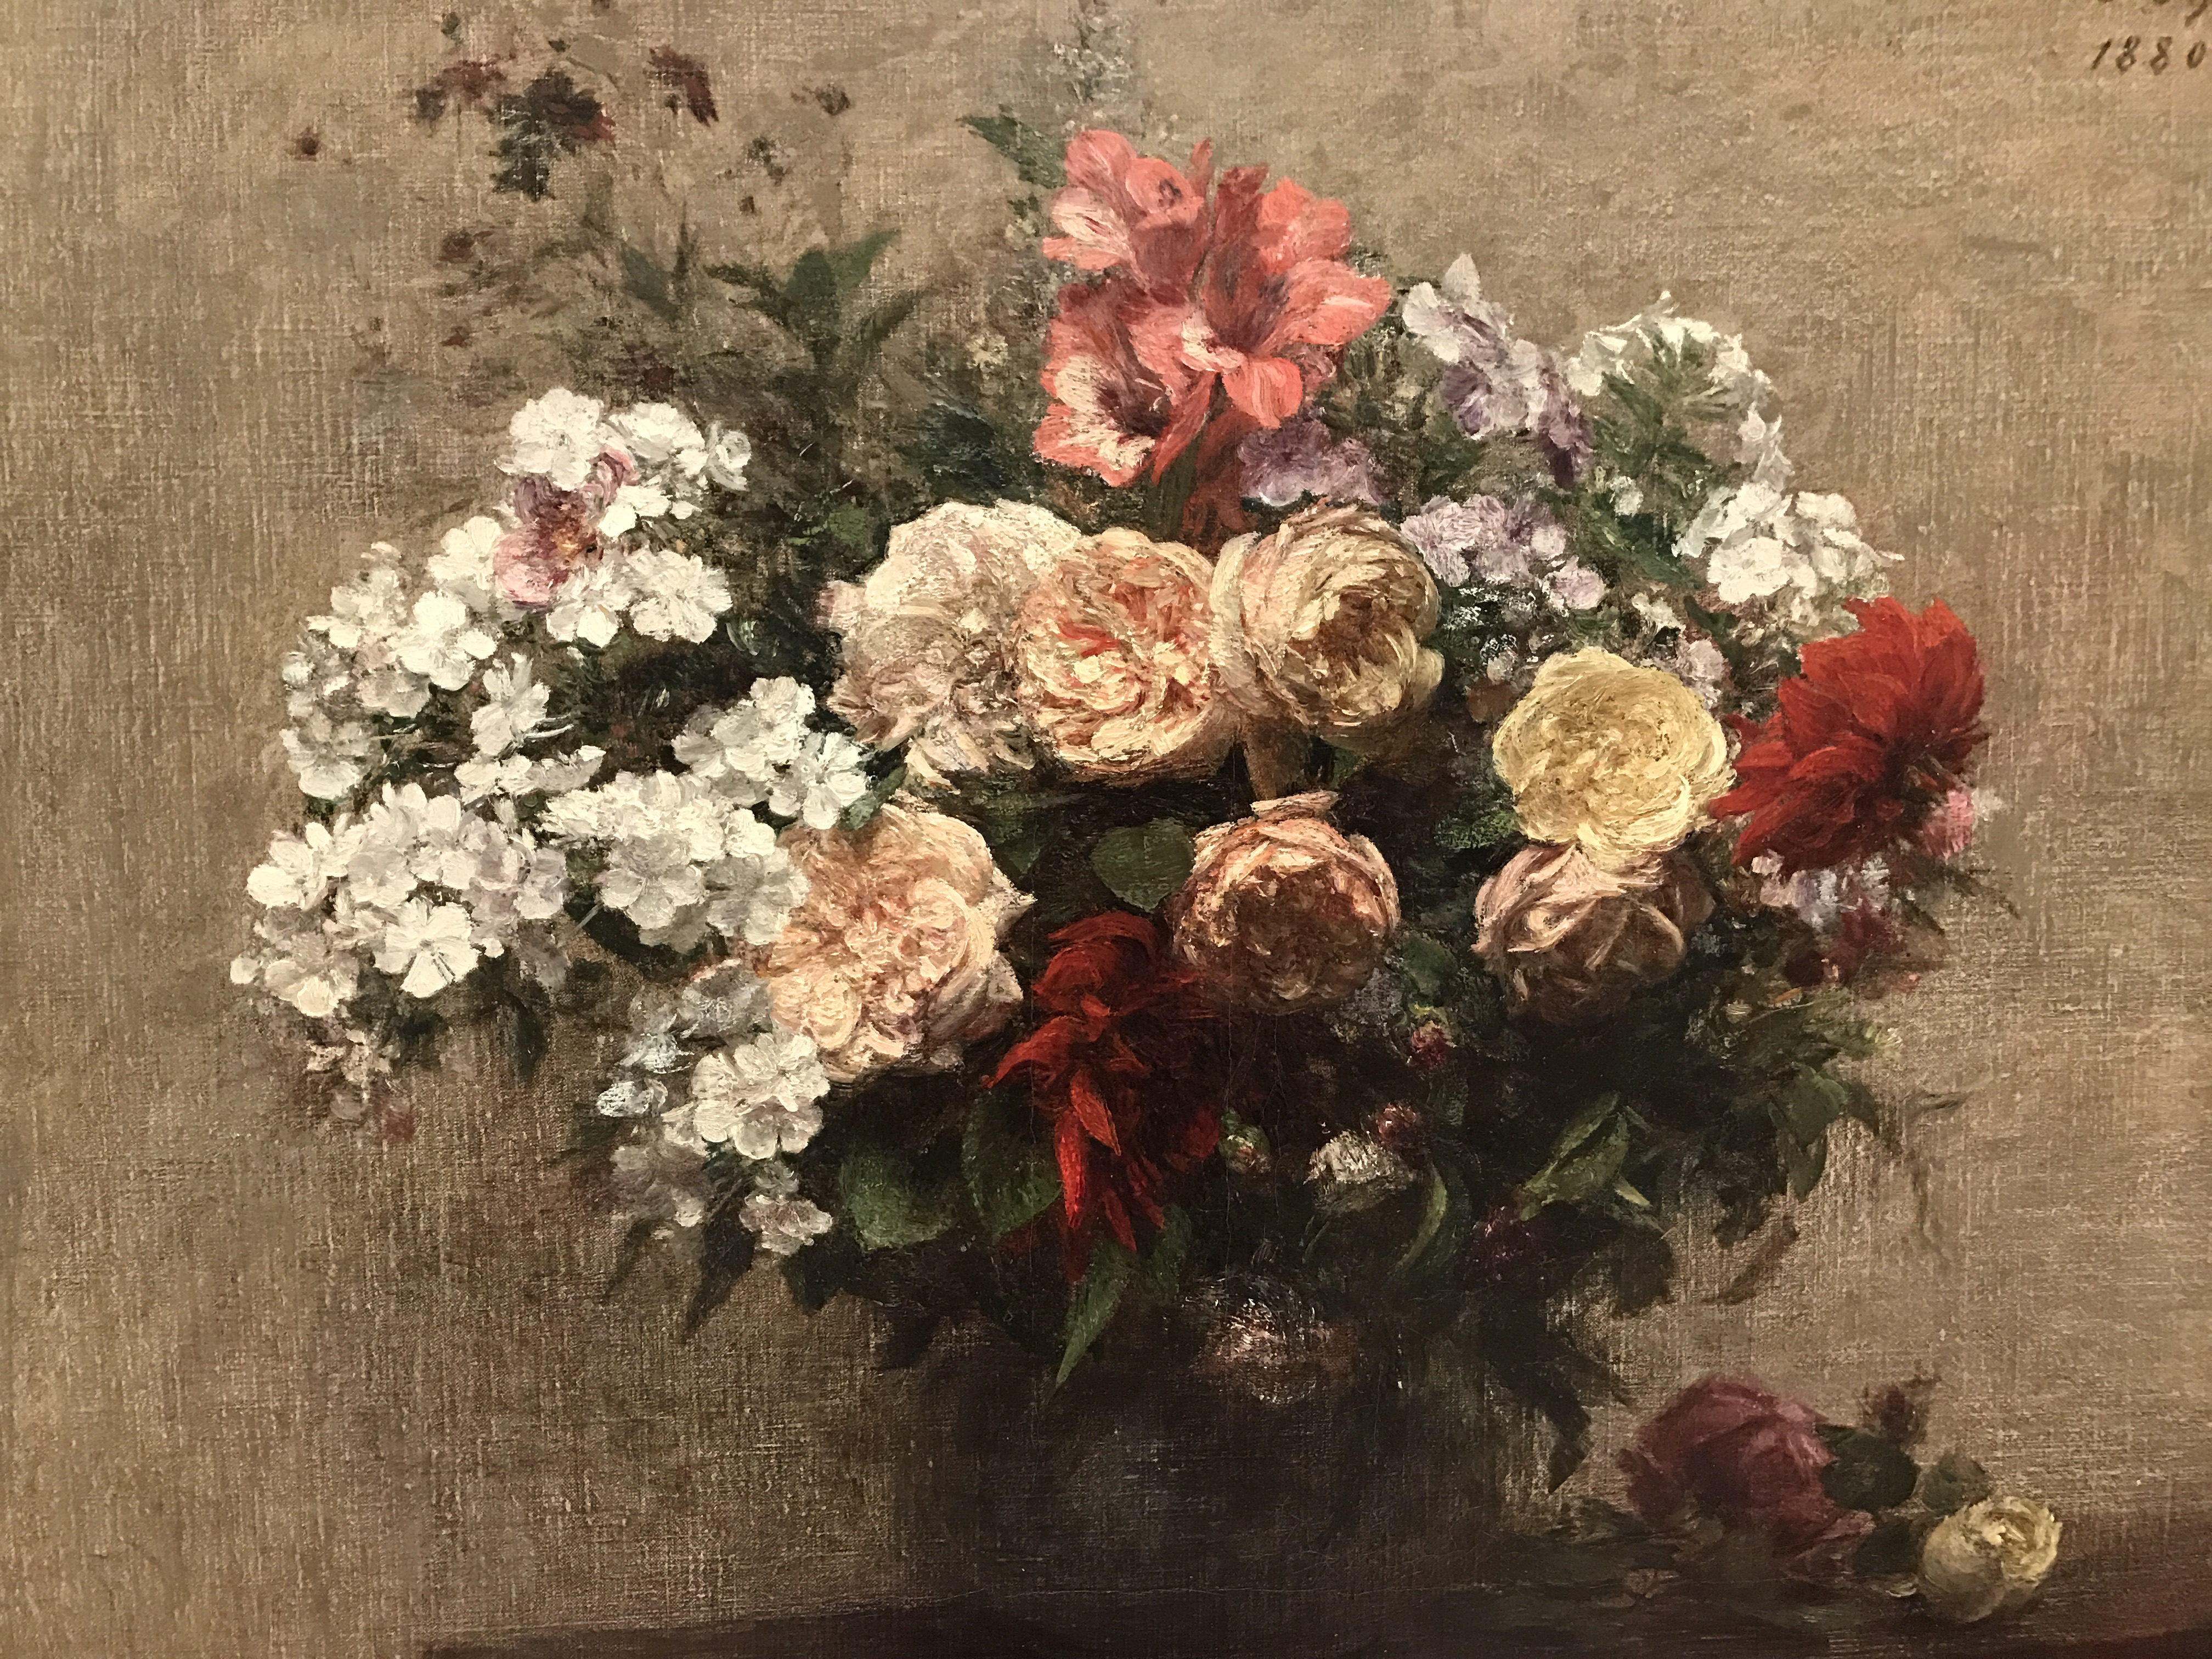 Summer Flowers by Henri Fantin-Latour, 1880, my photo